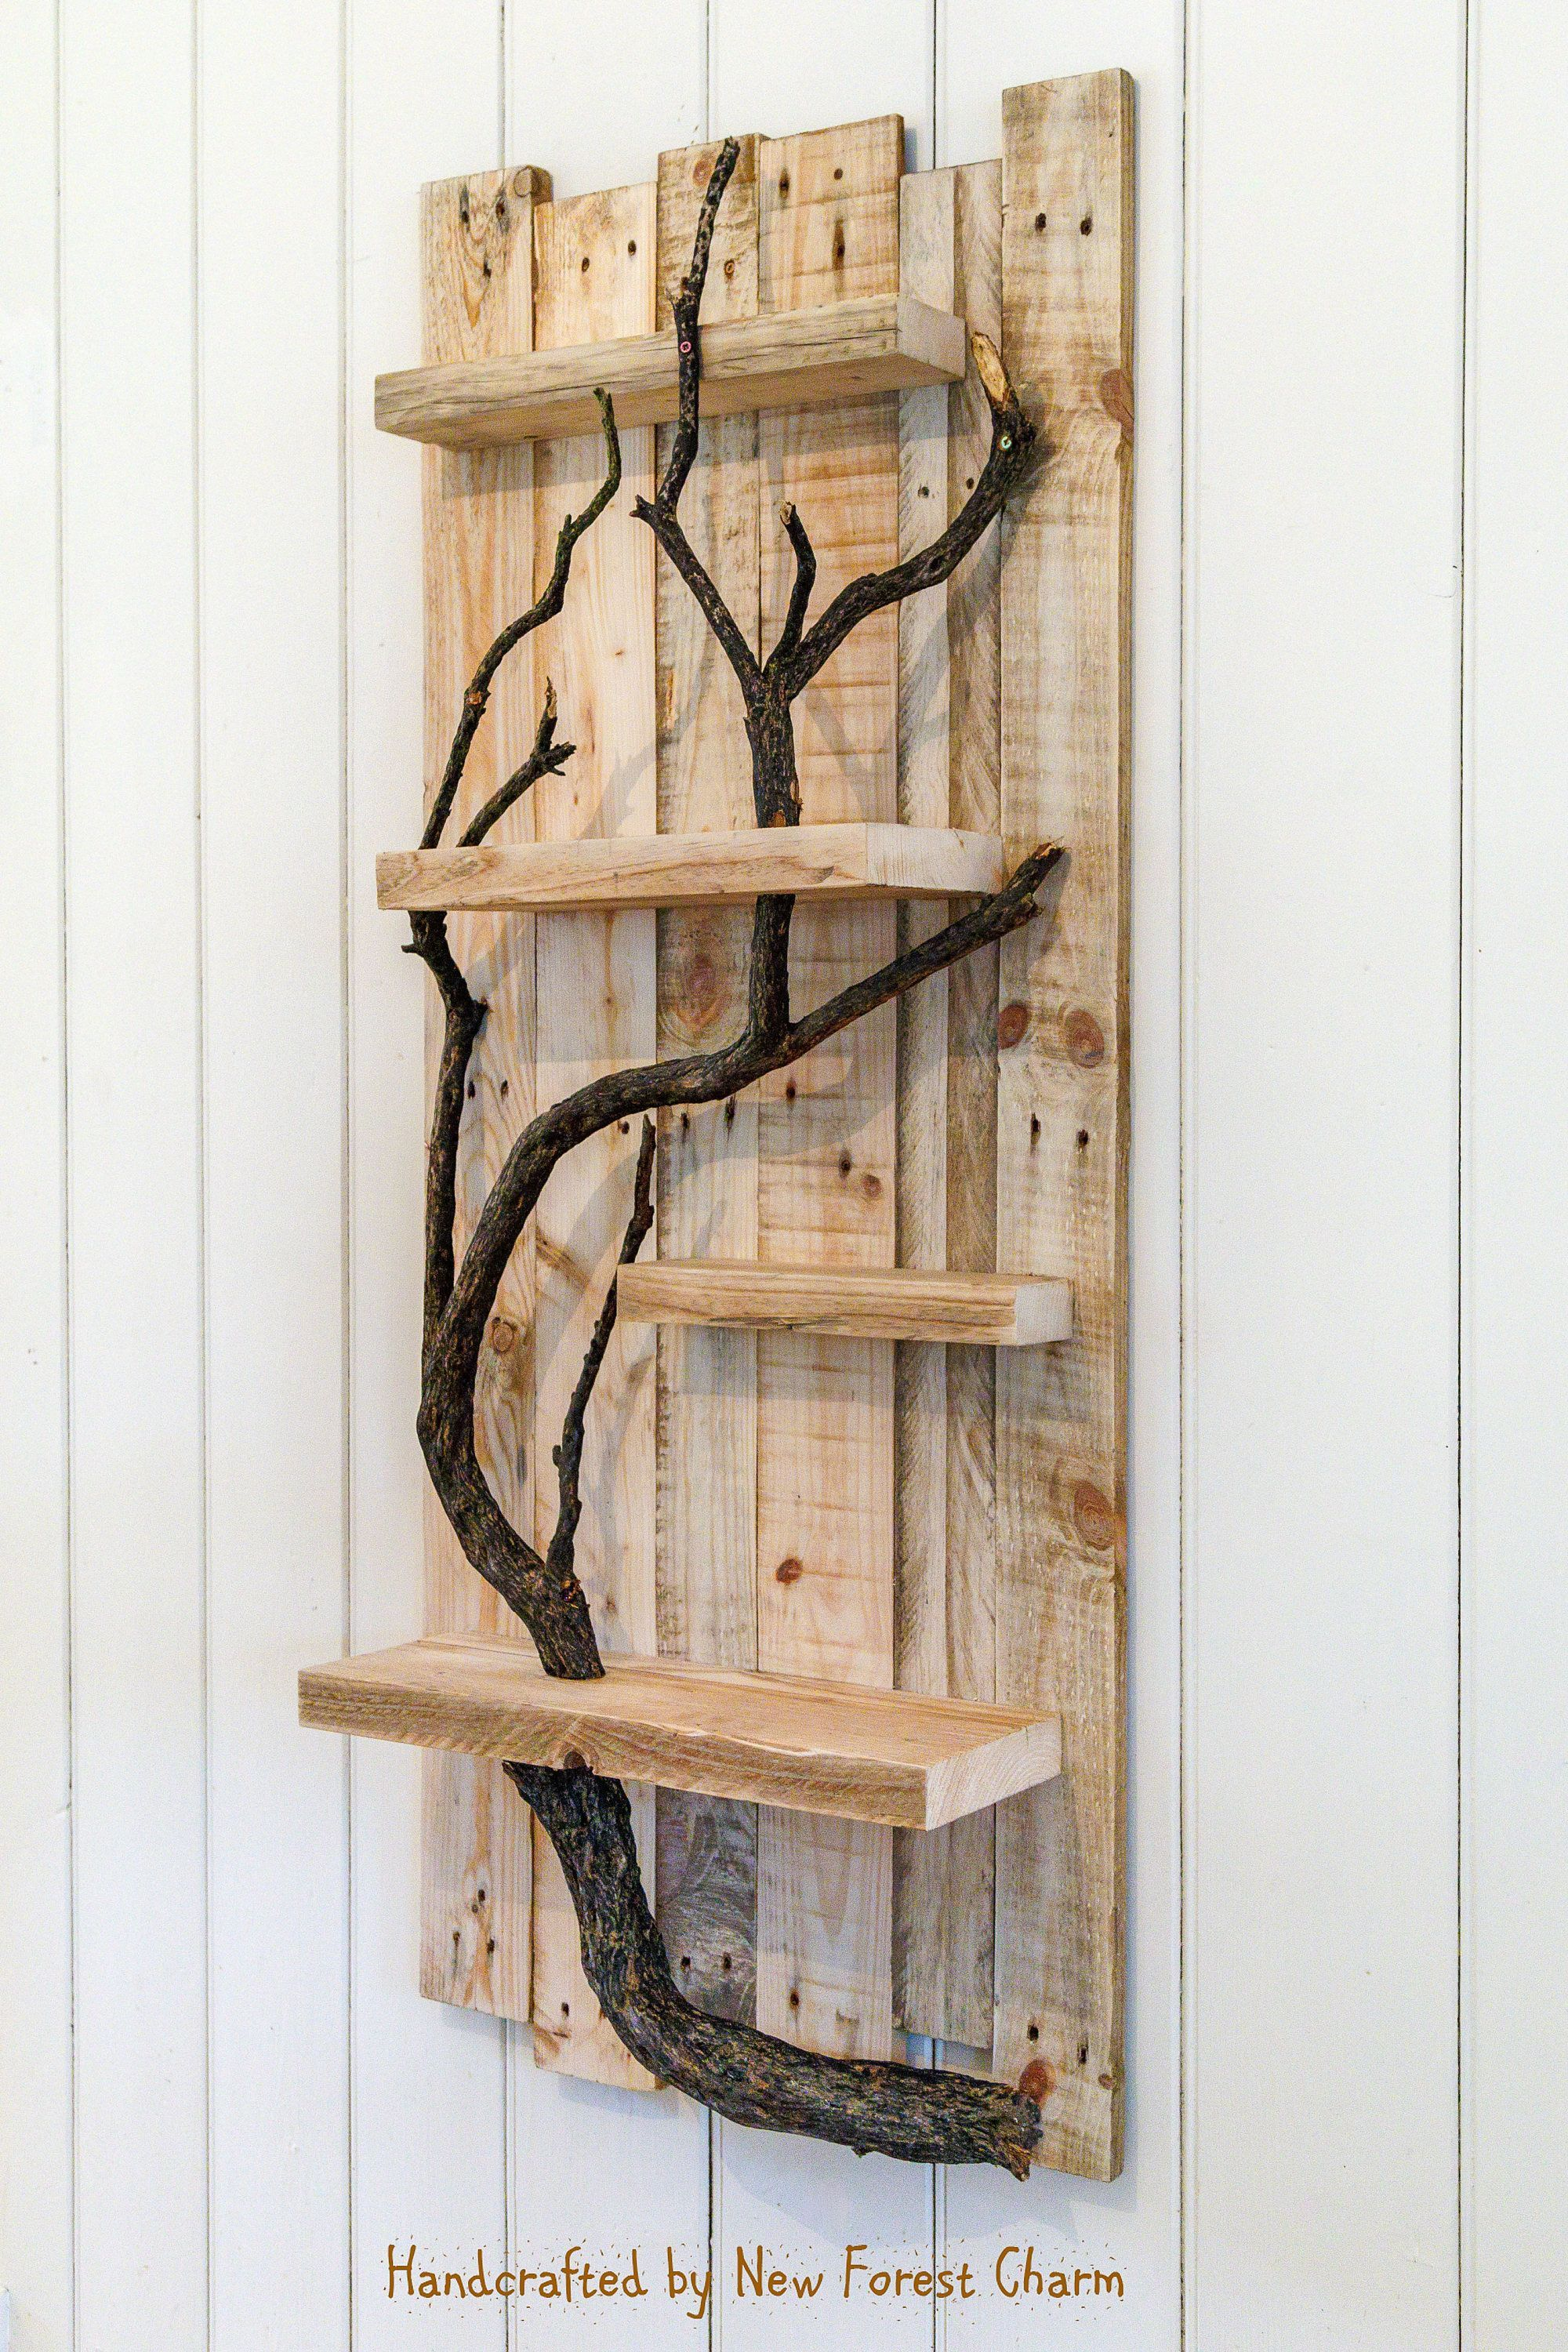 Wood Decorative Wall Art Rustic Home Decor Wall Art Reclaimed Pallet Shelves Wooden